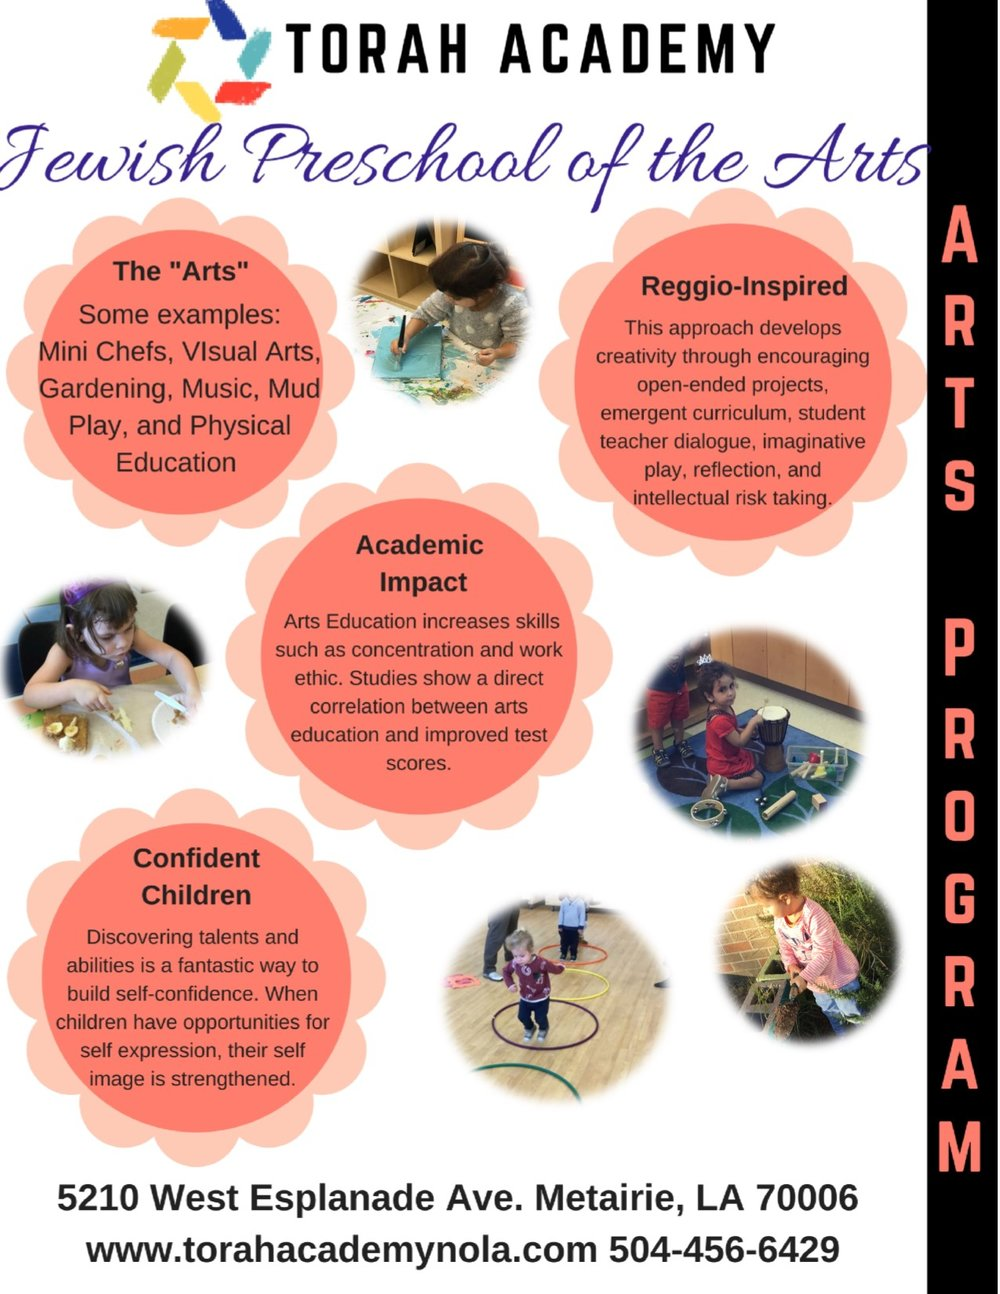 Jewish Preschool of the Arts (1).jpg